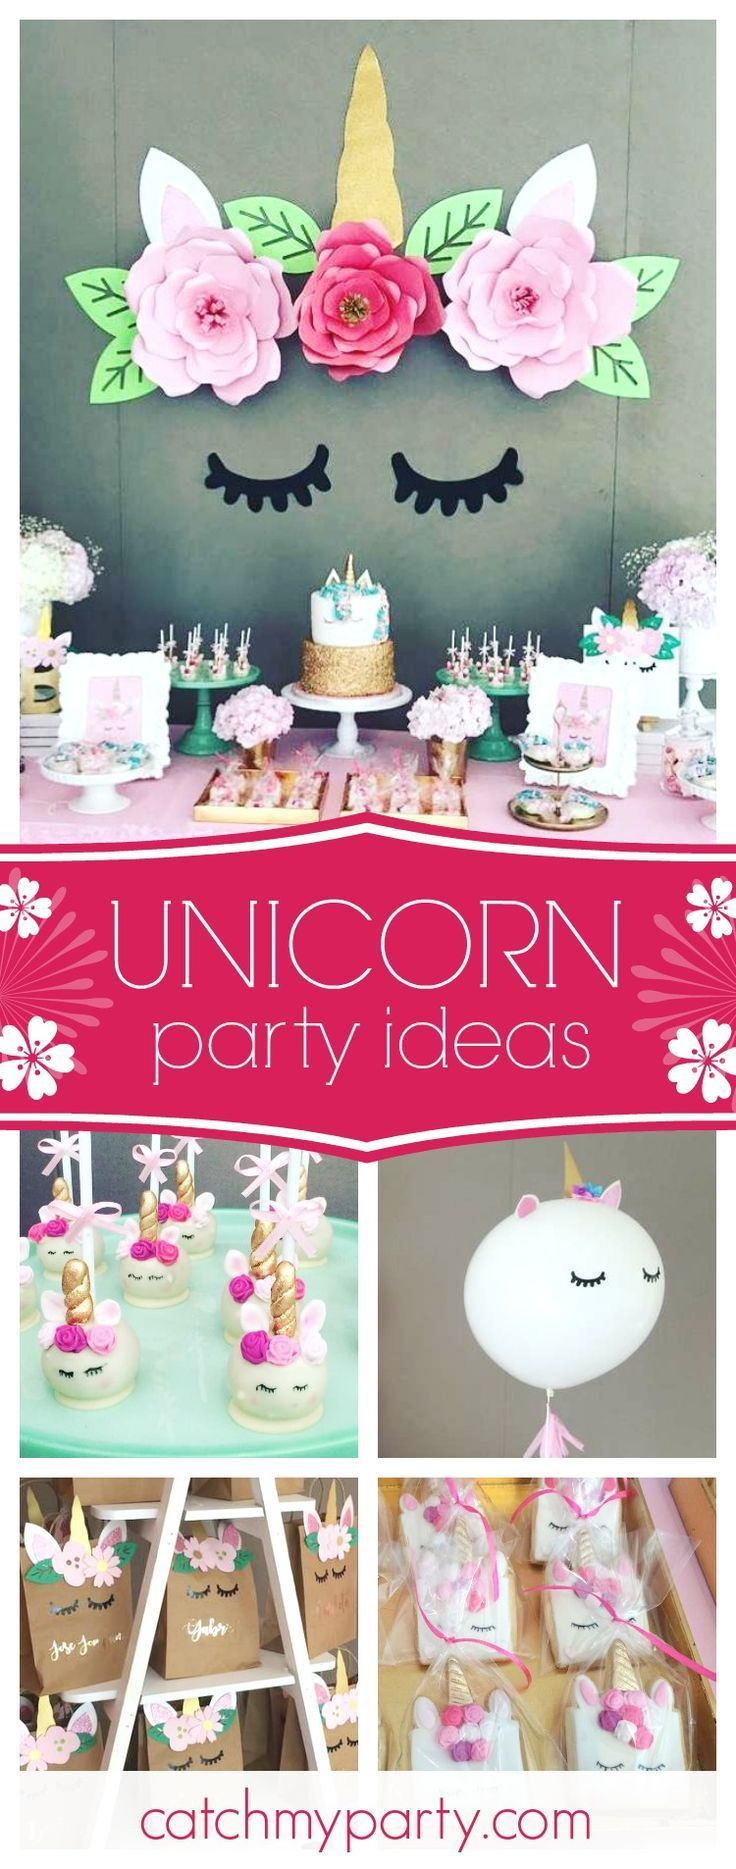 Swoon over this wonderful unicorn birthday party. The unicorn backdrop with the paper flowers is gorgeous!! See more party ideas and share yours at CatchMyParty.com #unicorn #girlbirthday #decoraciontematica